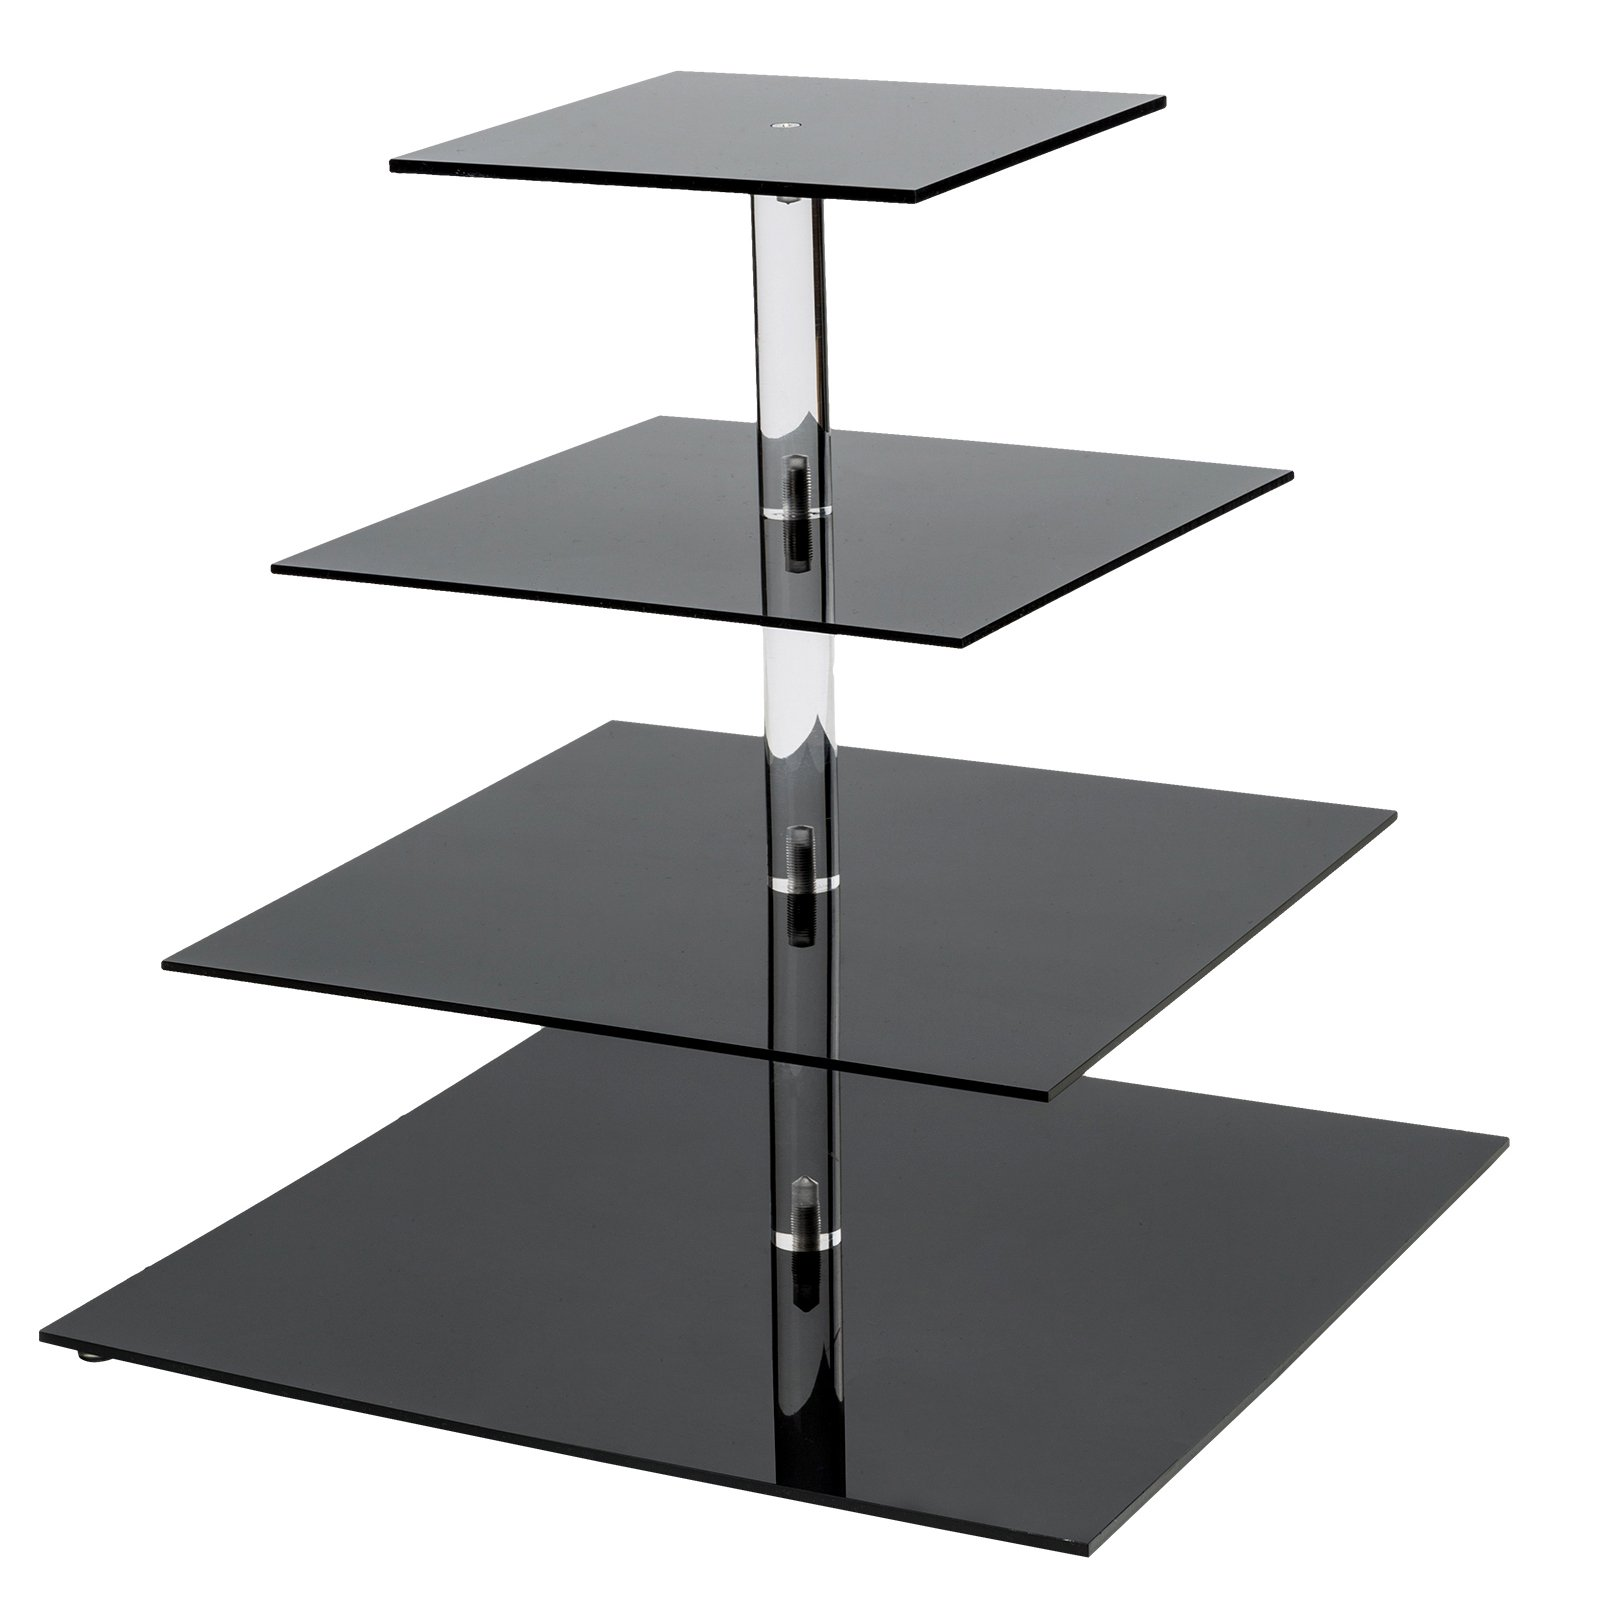 SinoAcrylic 4 Tier Square Cupcake Stand With Fantastic Plate - Dessert Display Holders - Black Stacked Party Cupcake Tree - Tiered Cake Stand - Cupcake Tower for Parties Birthday